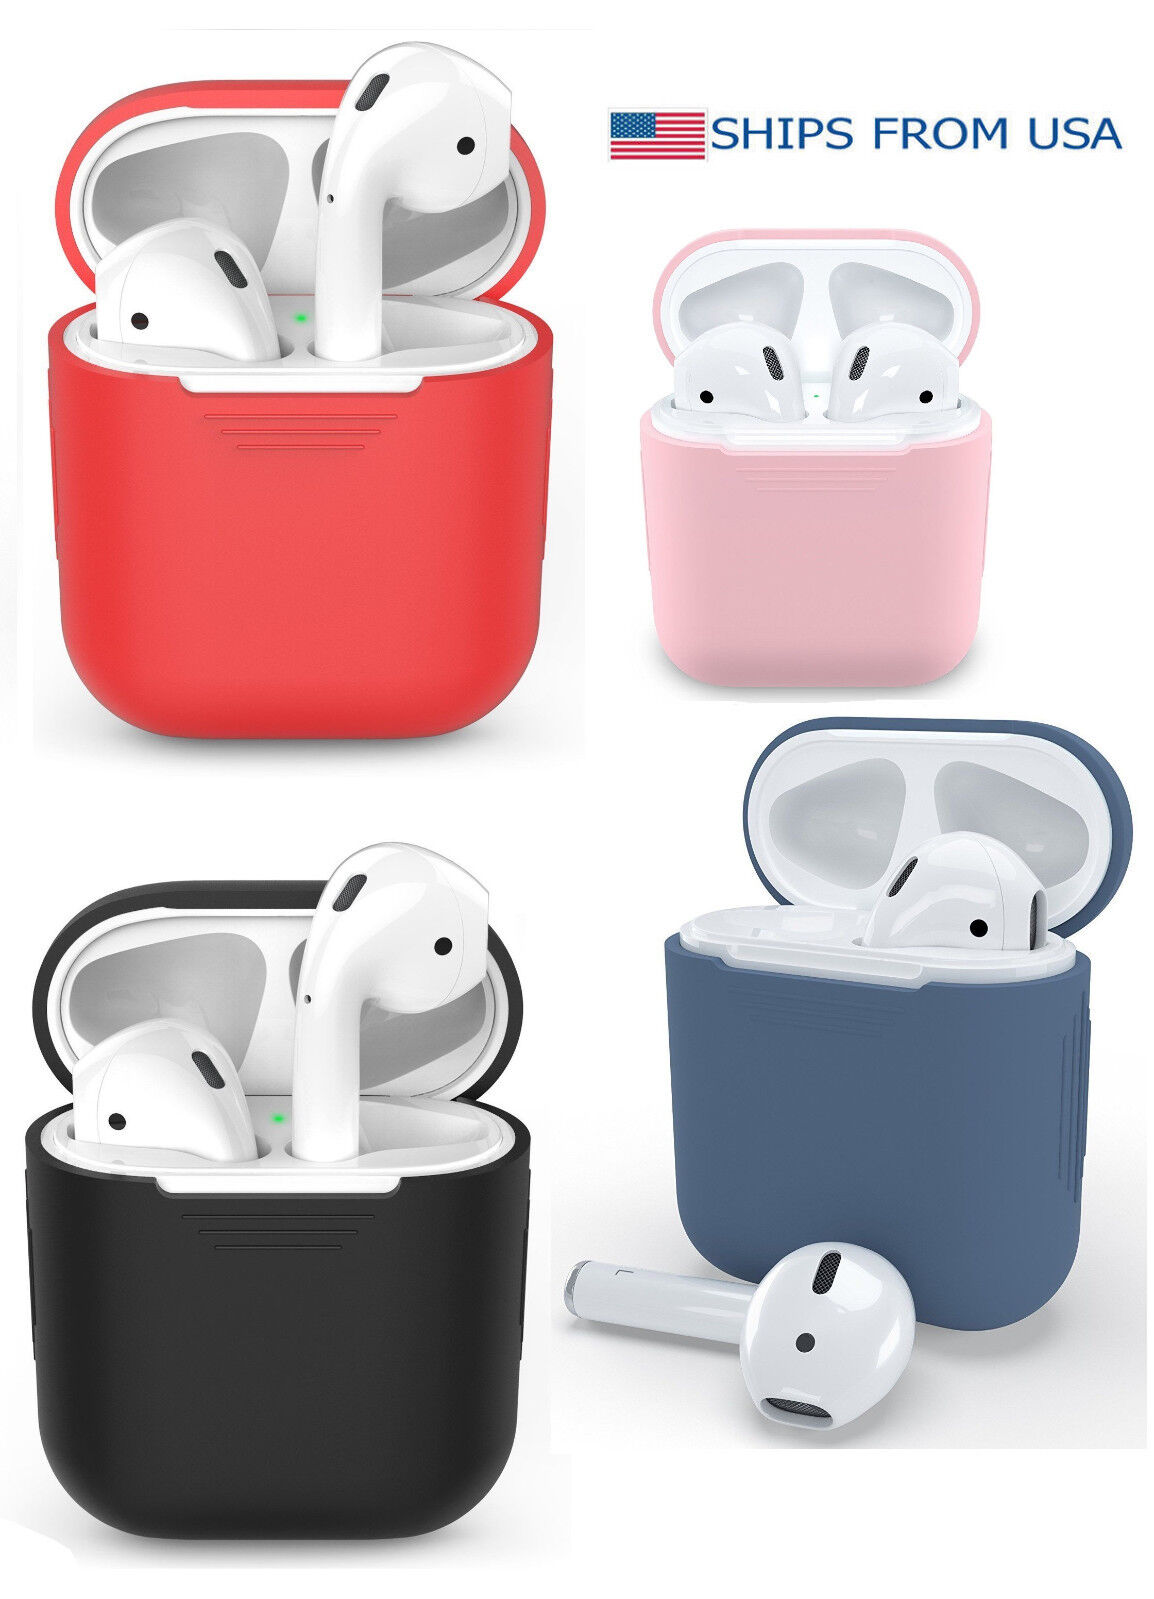 Shockproof Protective Silicone Skin Cover For Apple AirPods Charging Case *New Cases, Covers & Skins